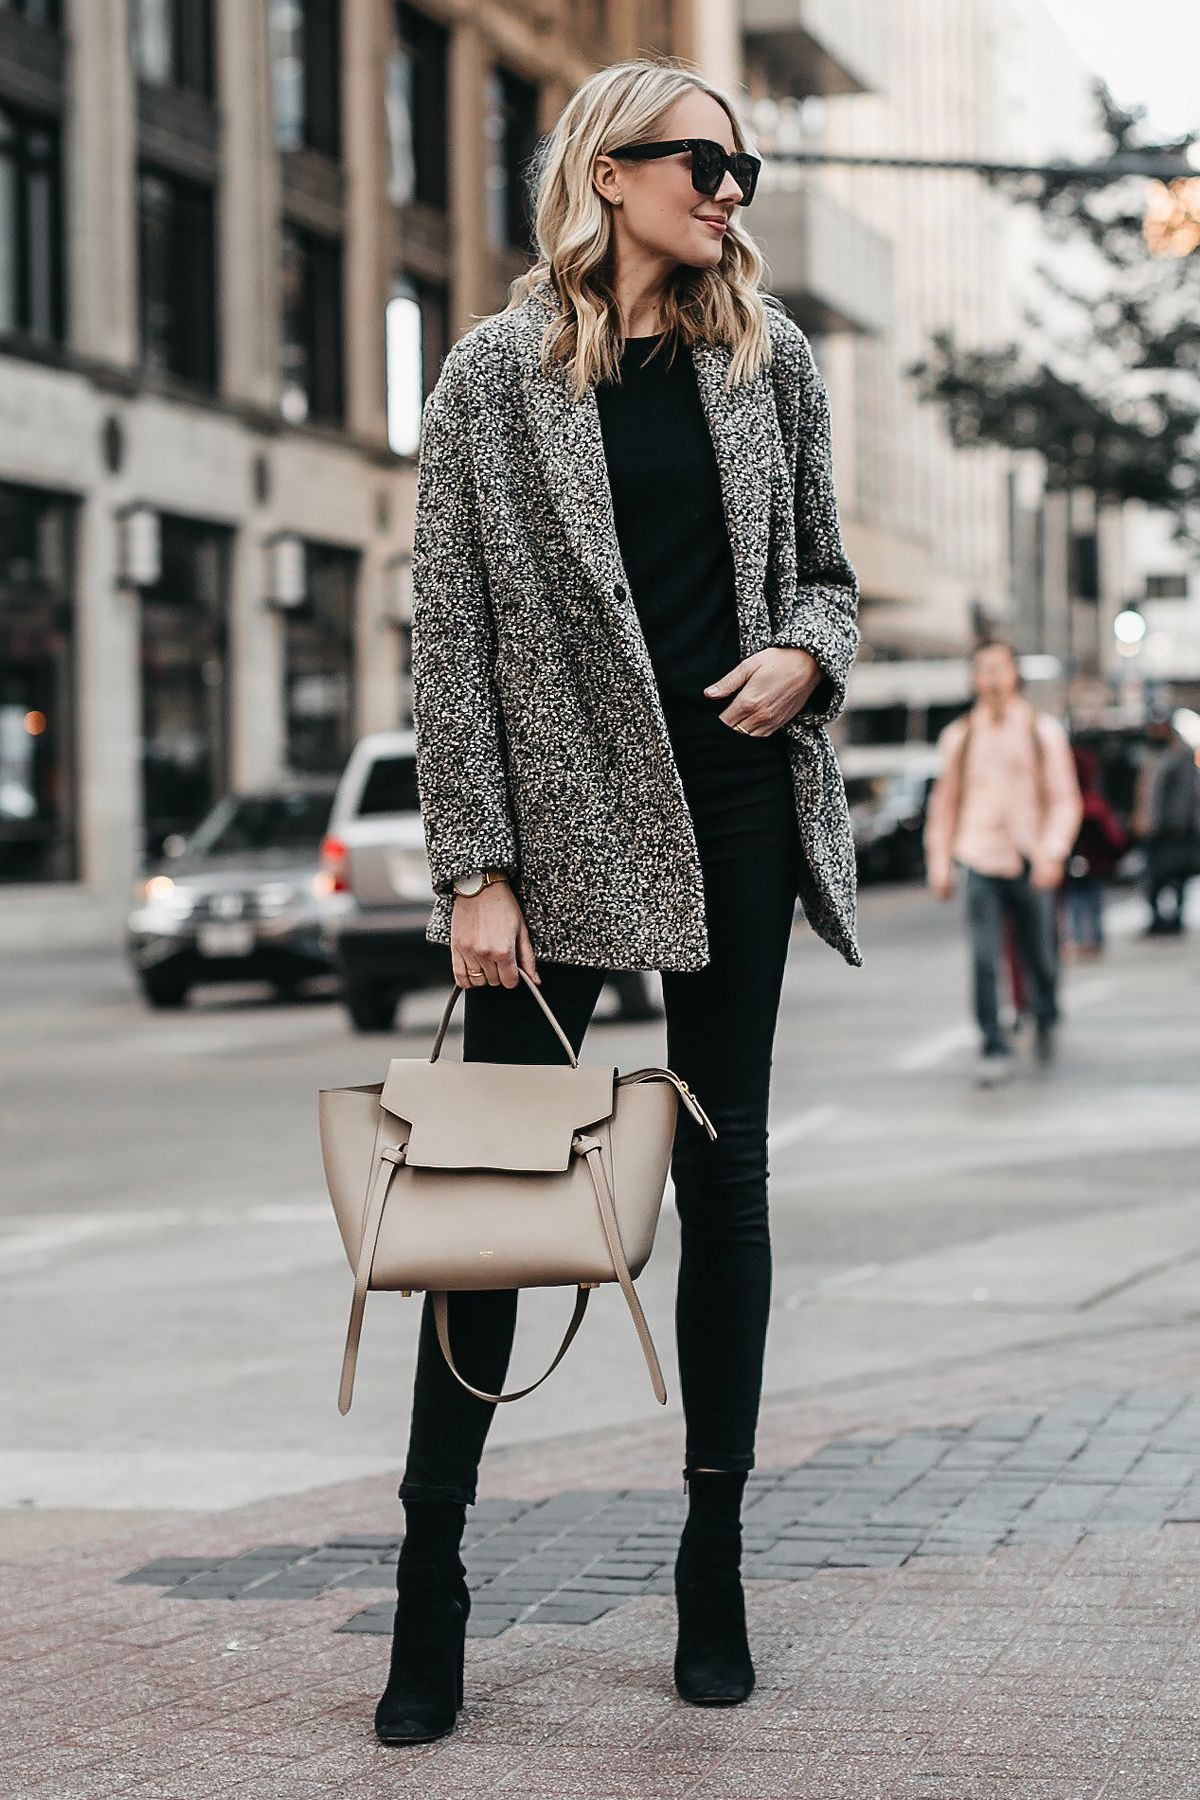 Boucle Coat Outfit Ideas